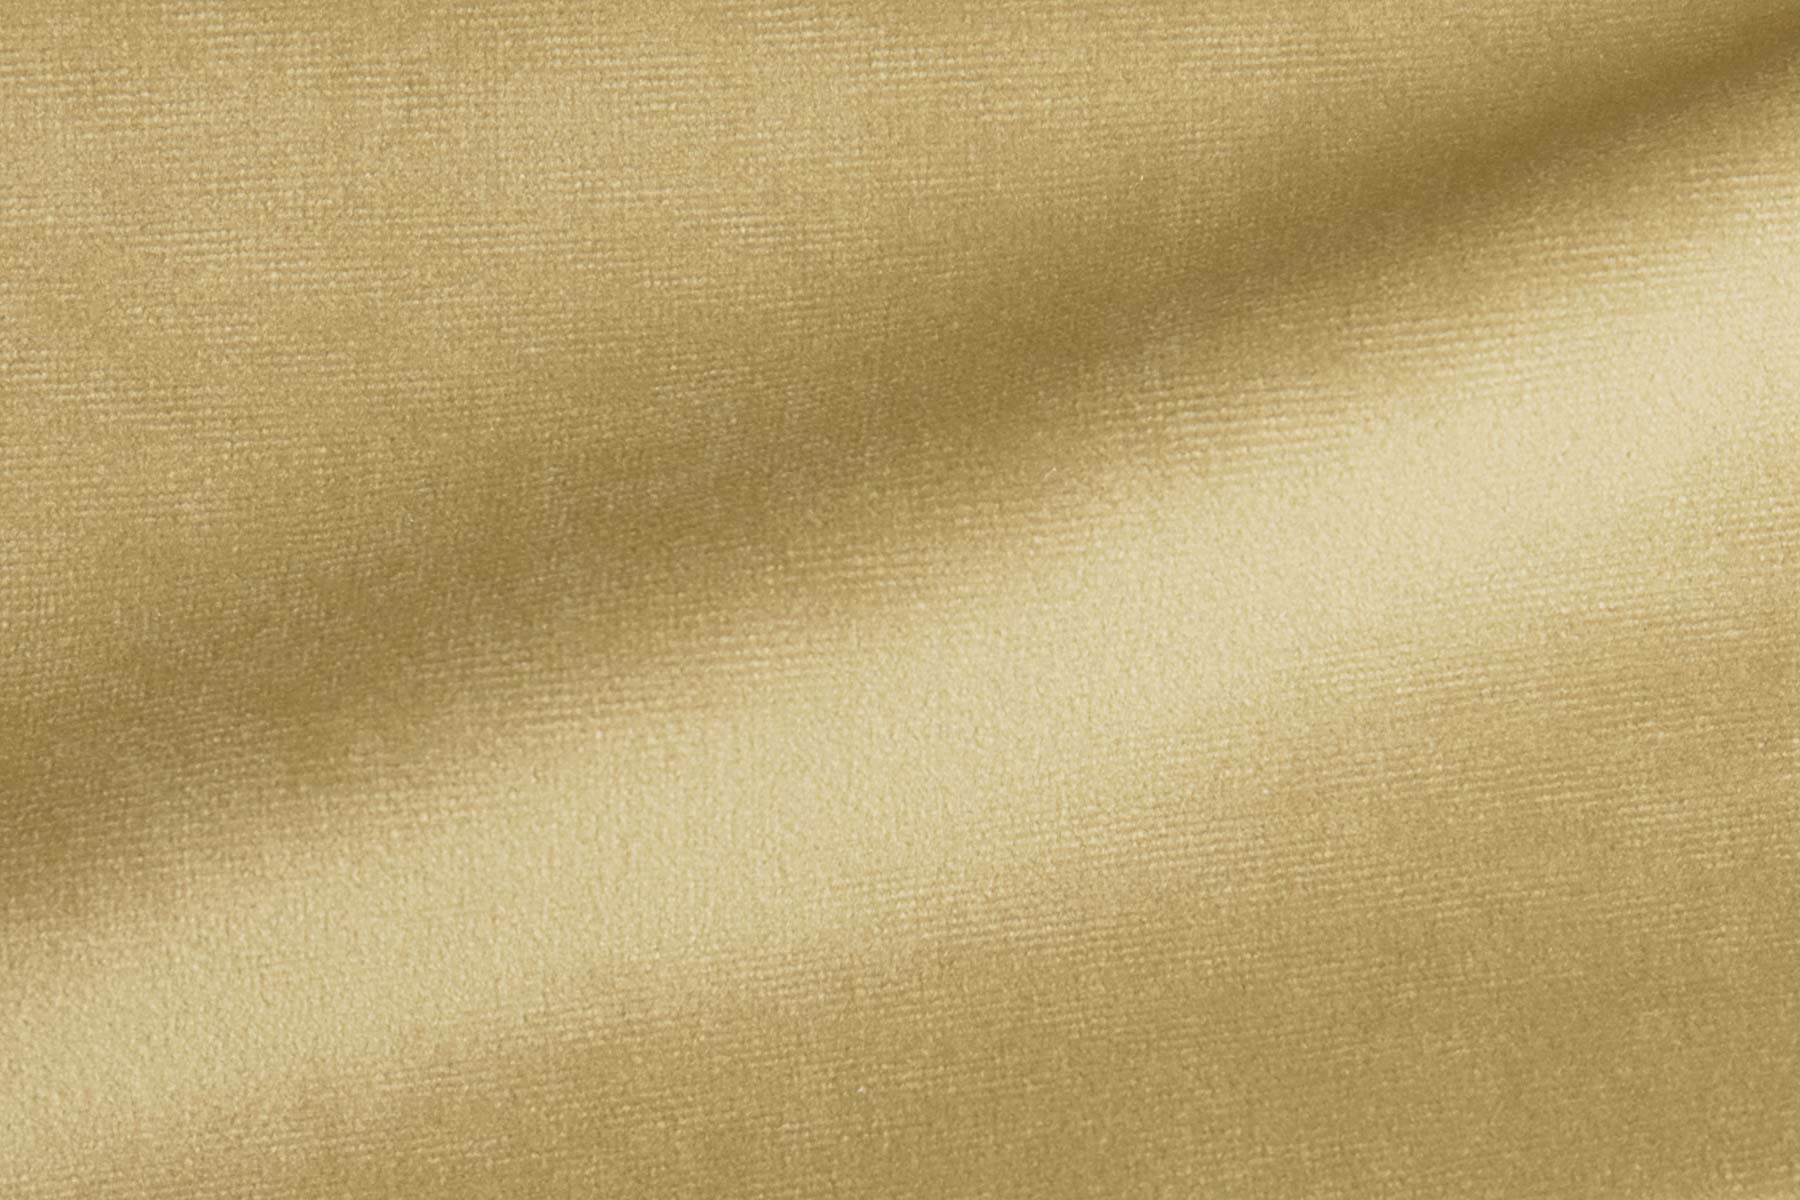 PARIS VELVET BEIGE Fabric by KOKET